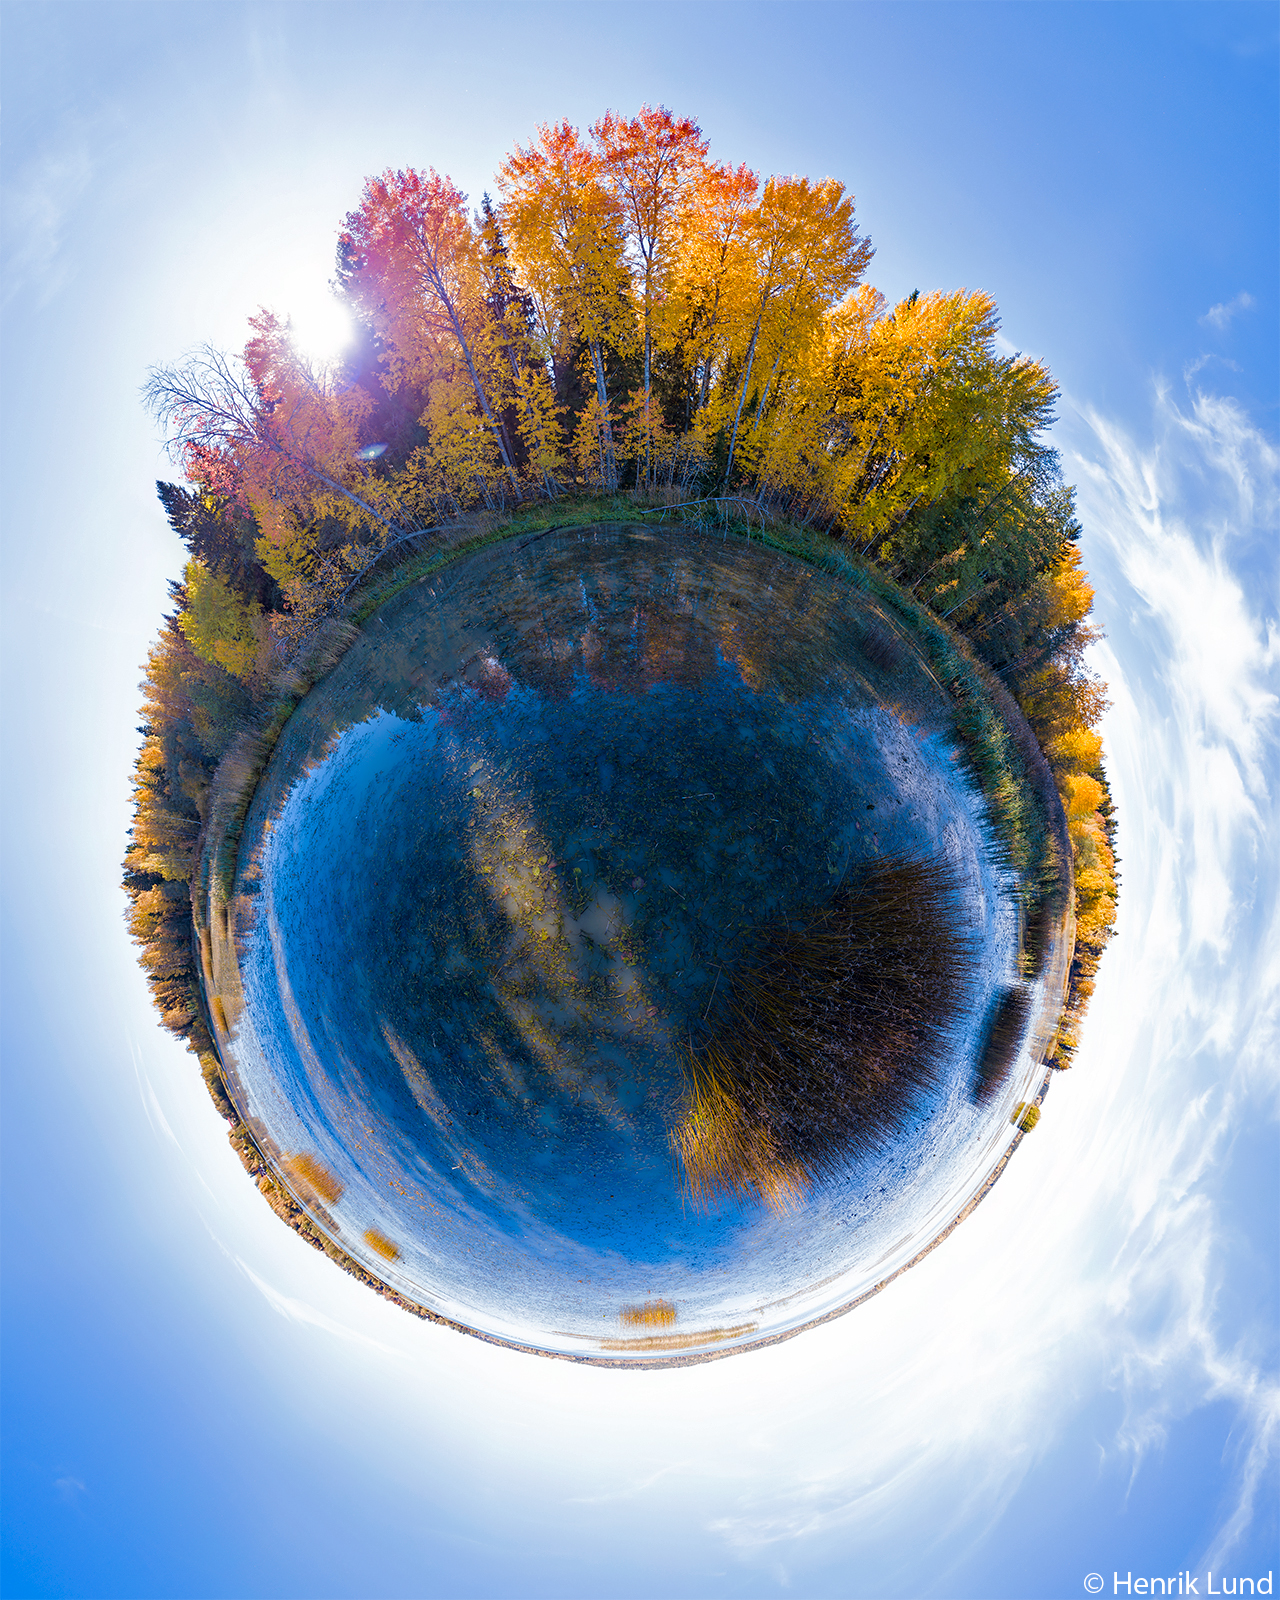 360 degrees little planet aerial view over colorful aspens. Lappträsk, Finland. October 2018.